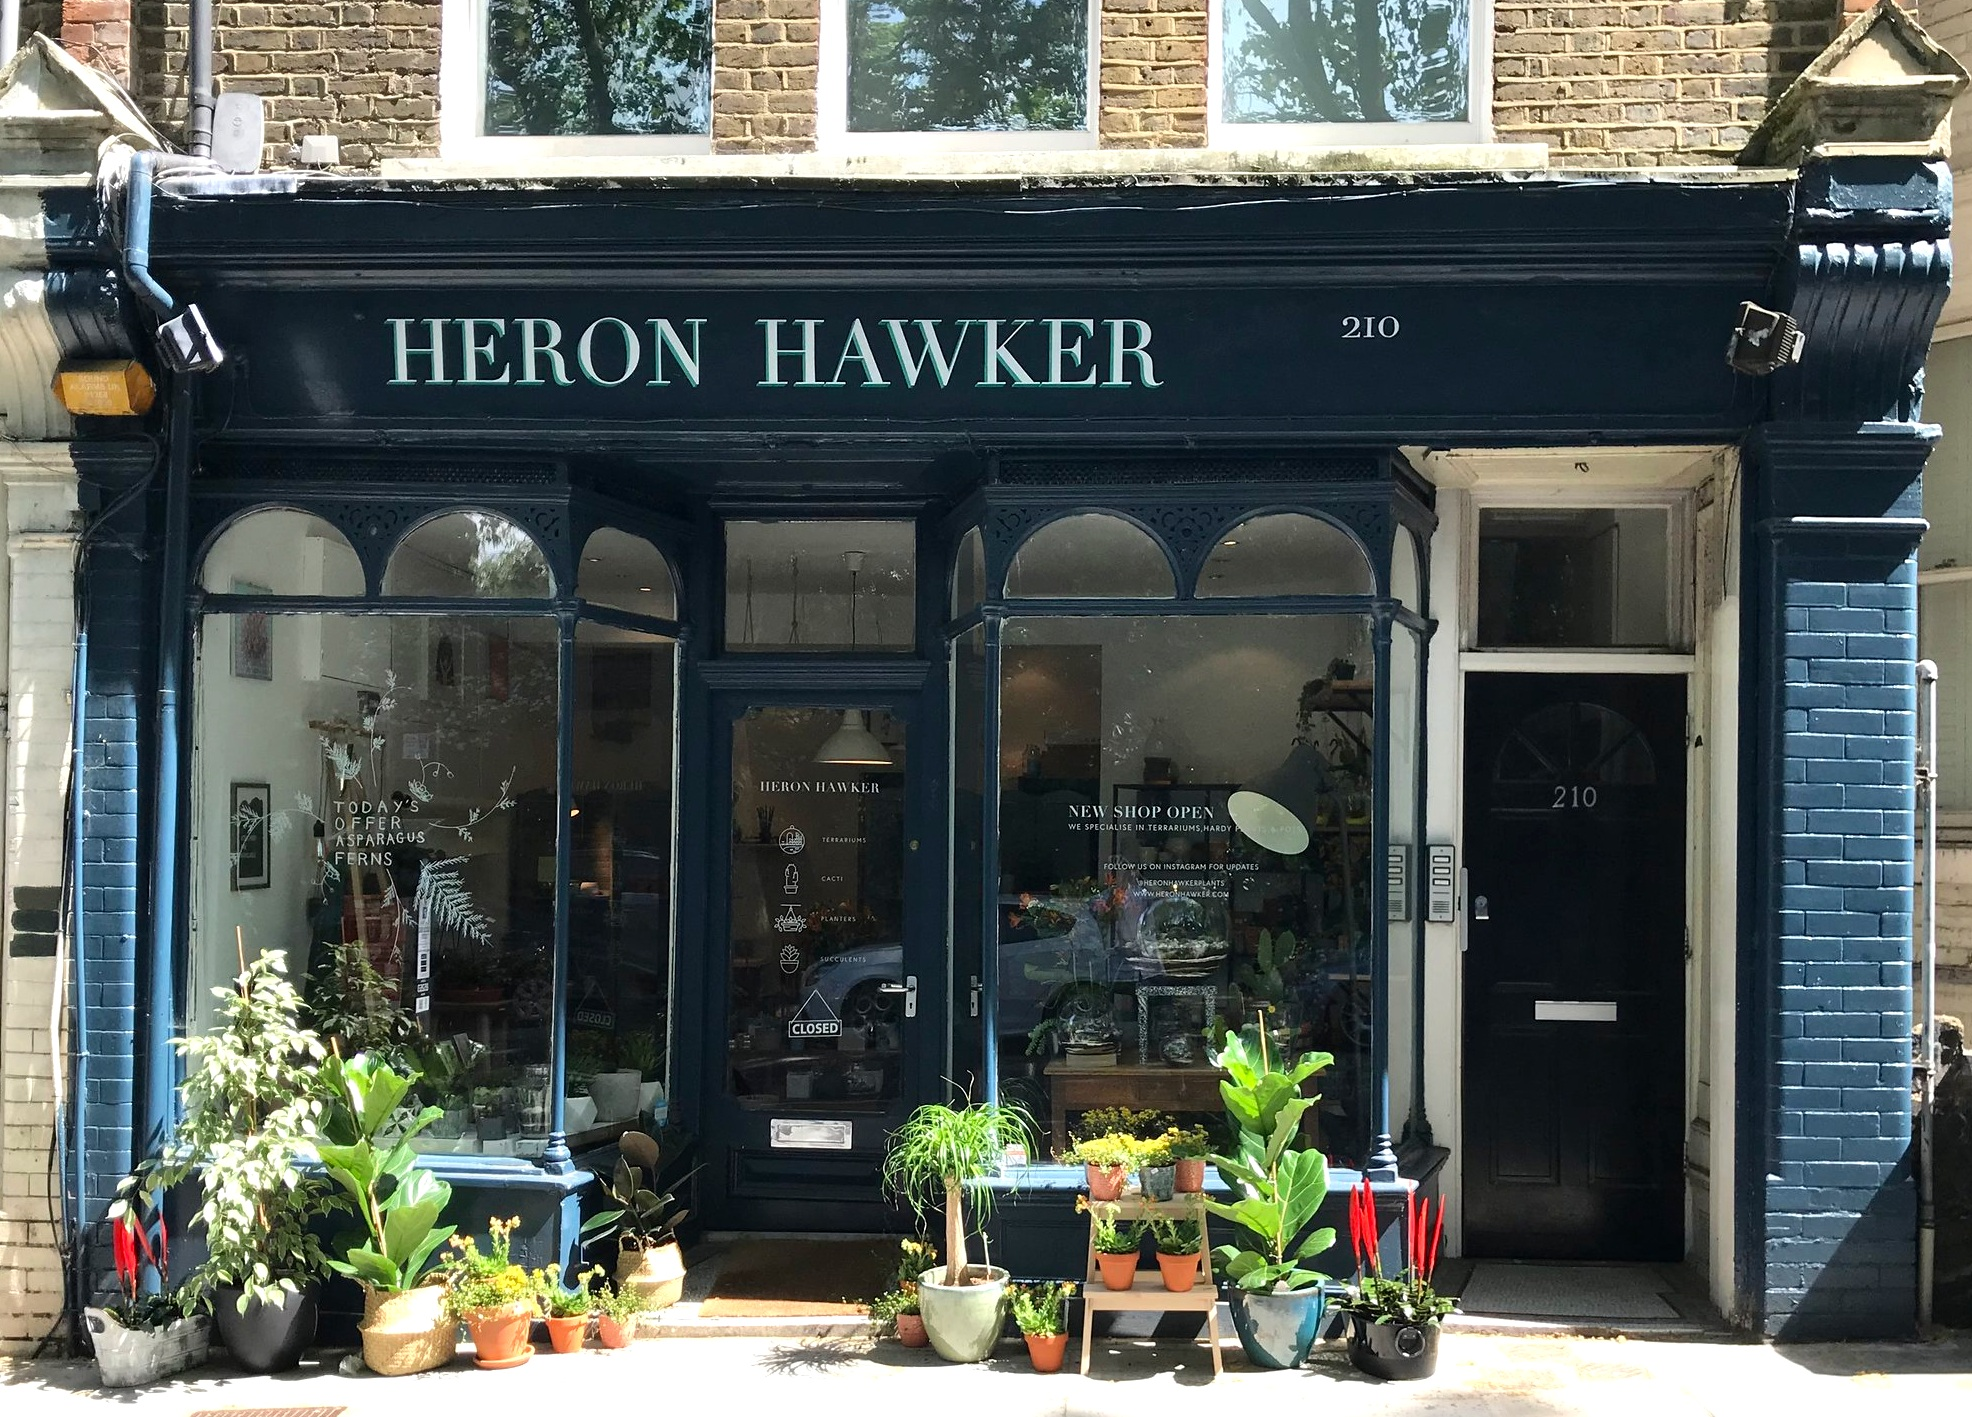 House plant shop Heron Hawker in London